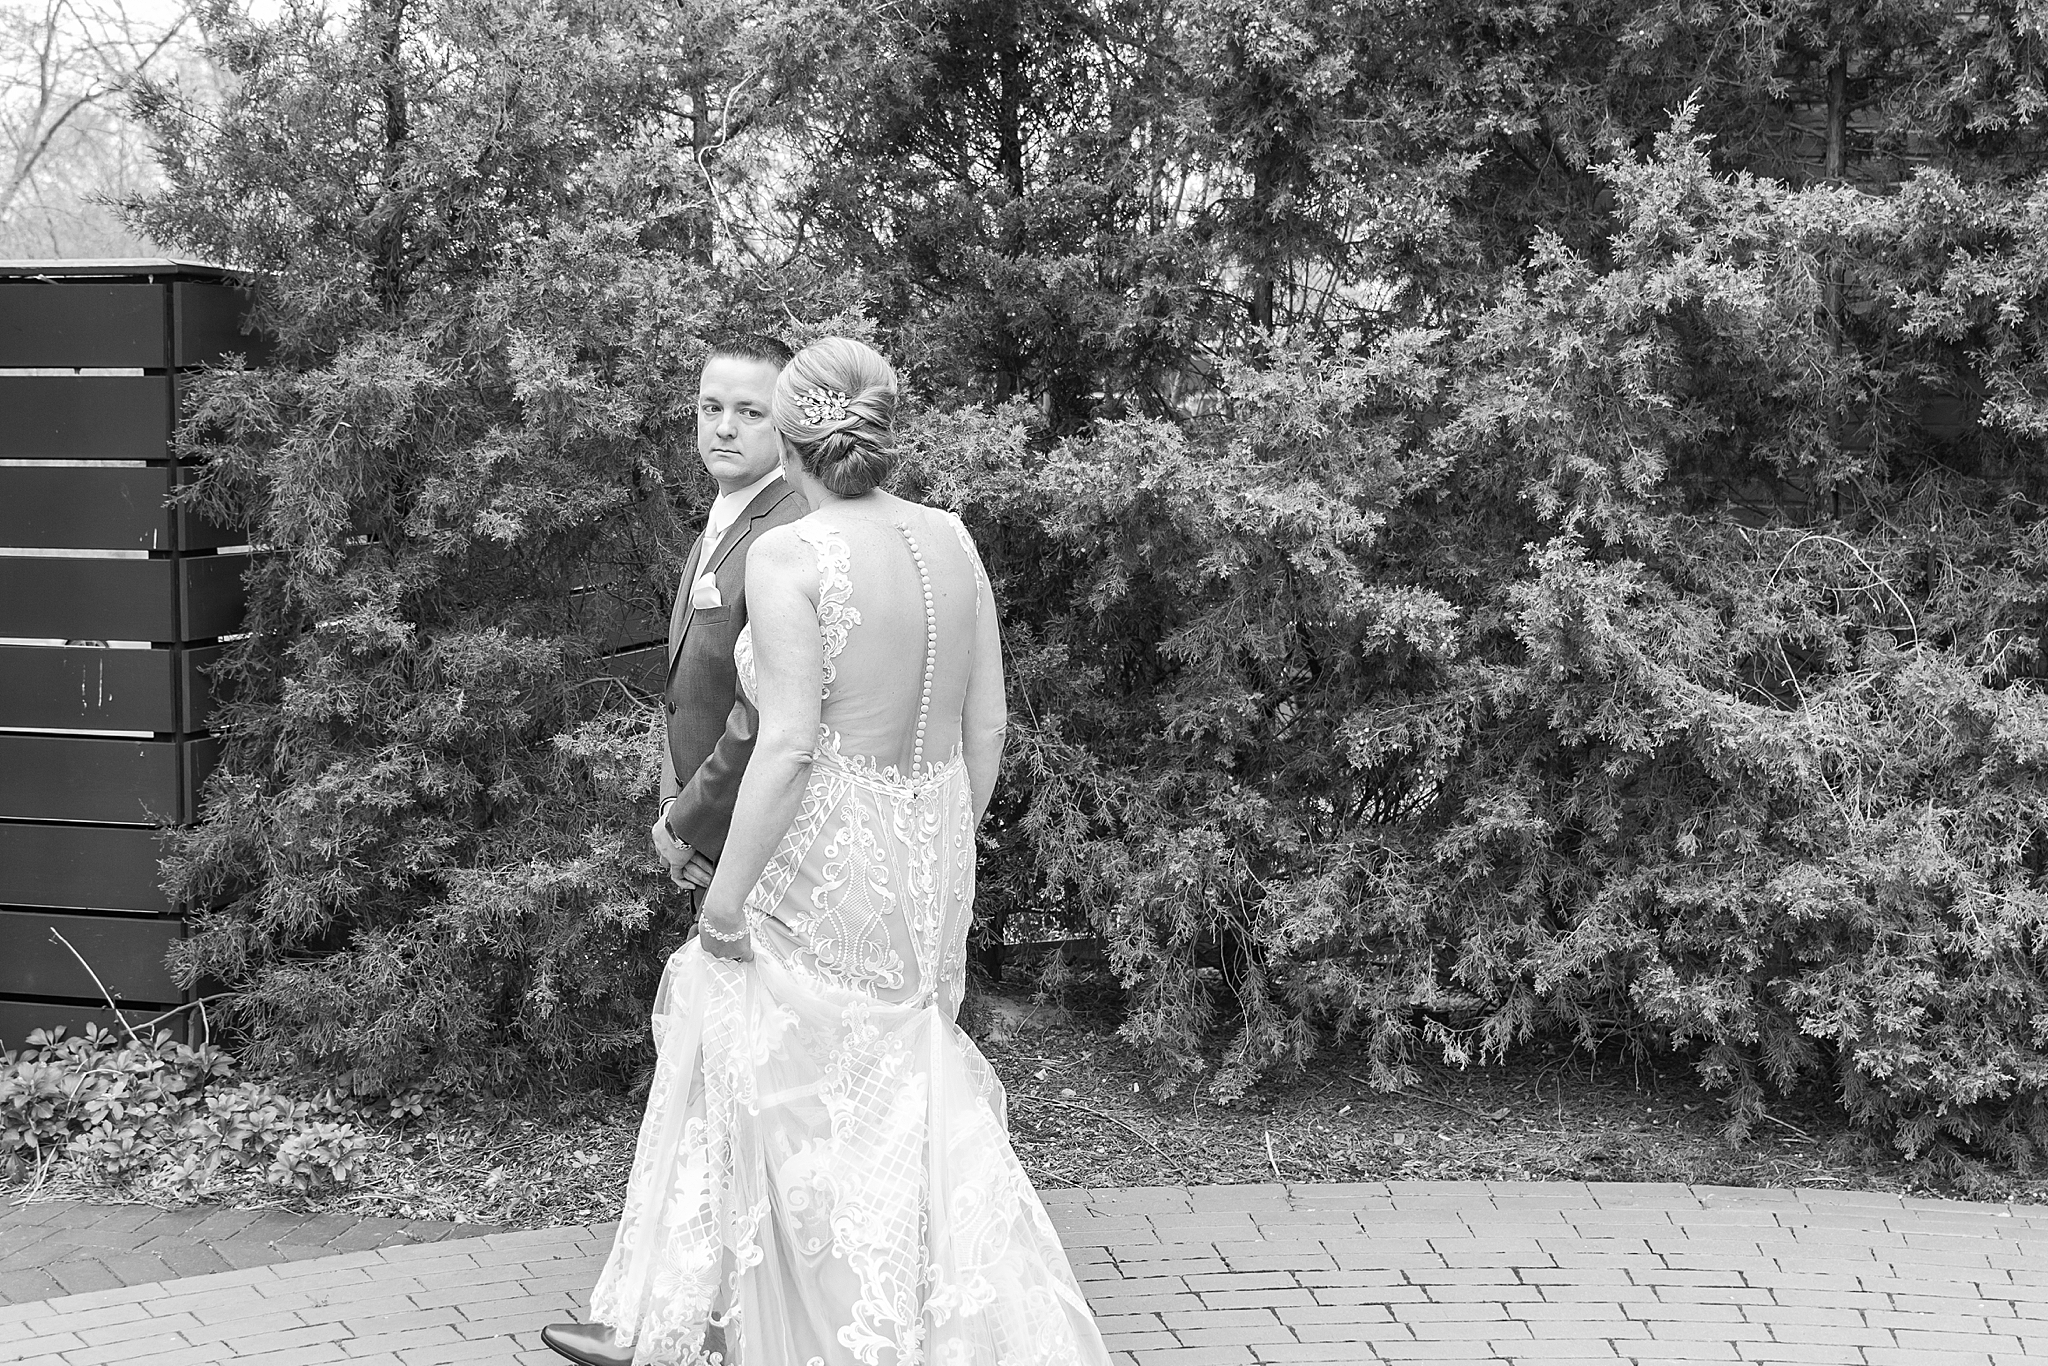 modern-romantic-wedding-photography-at-webers-in-ann-arbor-michigan-by-courtney-carolyn-photography_0020.jpg